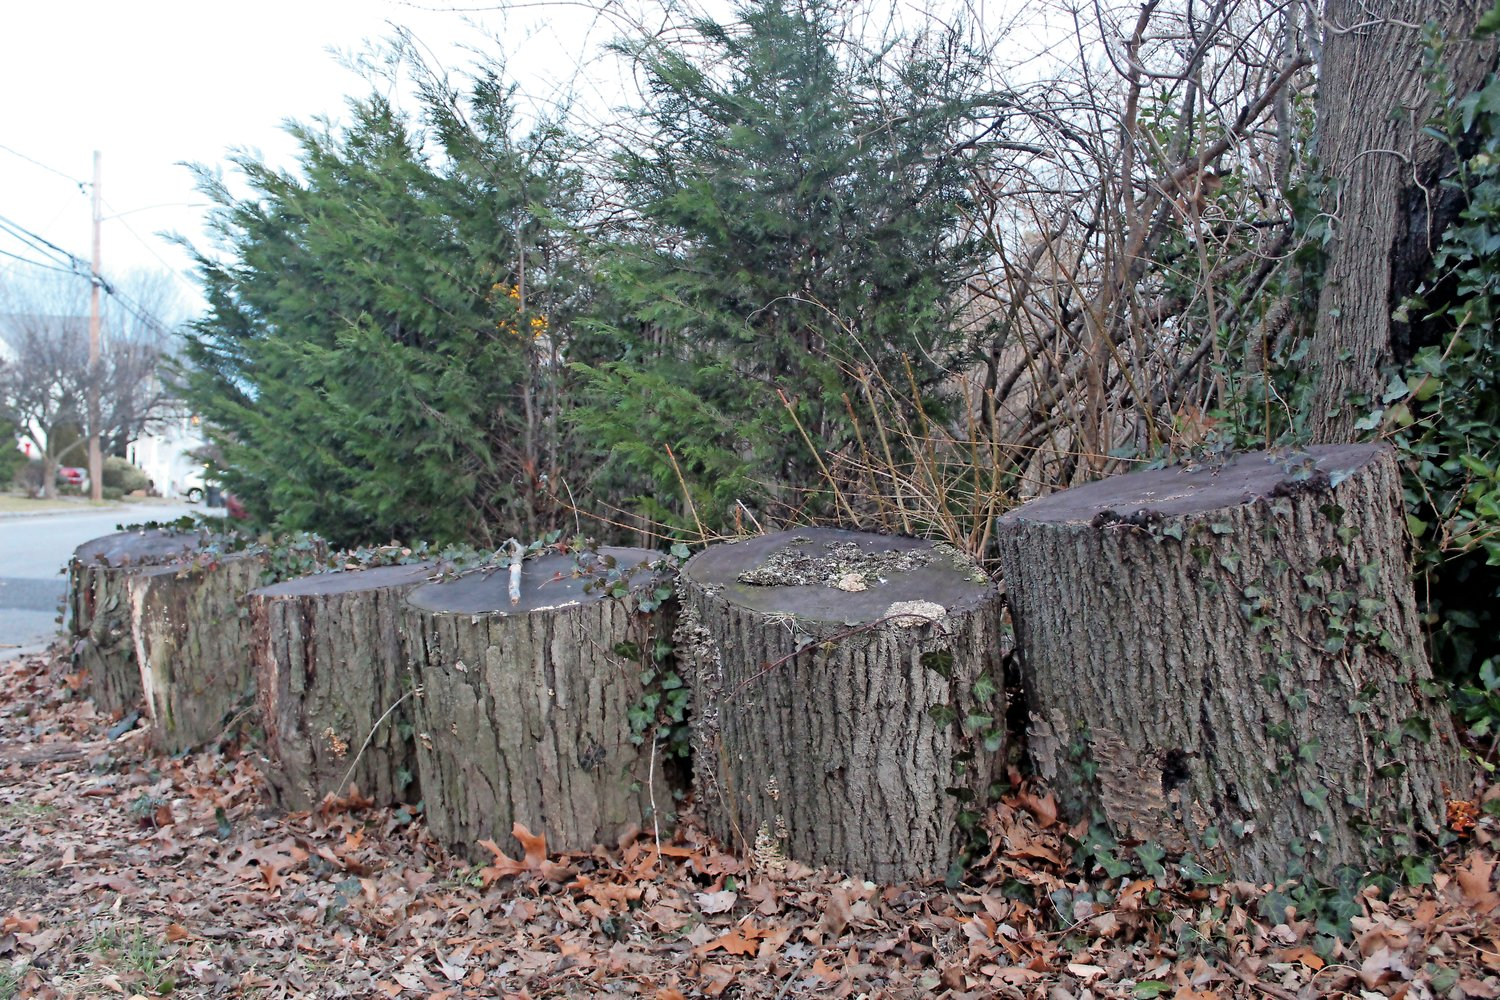 At the intersection of Abbot, Bangs and Olin avenues in Tiny Town, more than 30 trees were cut, leaving a horseshoe-shaped assemblage of stumps.